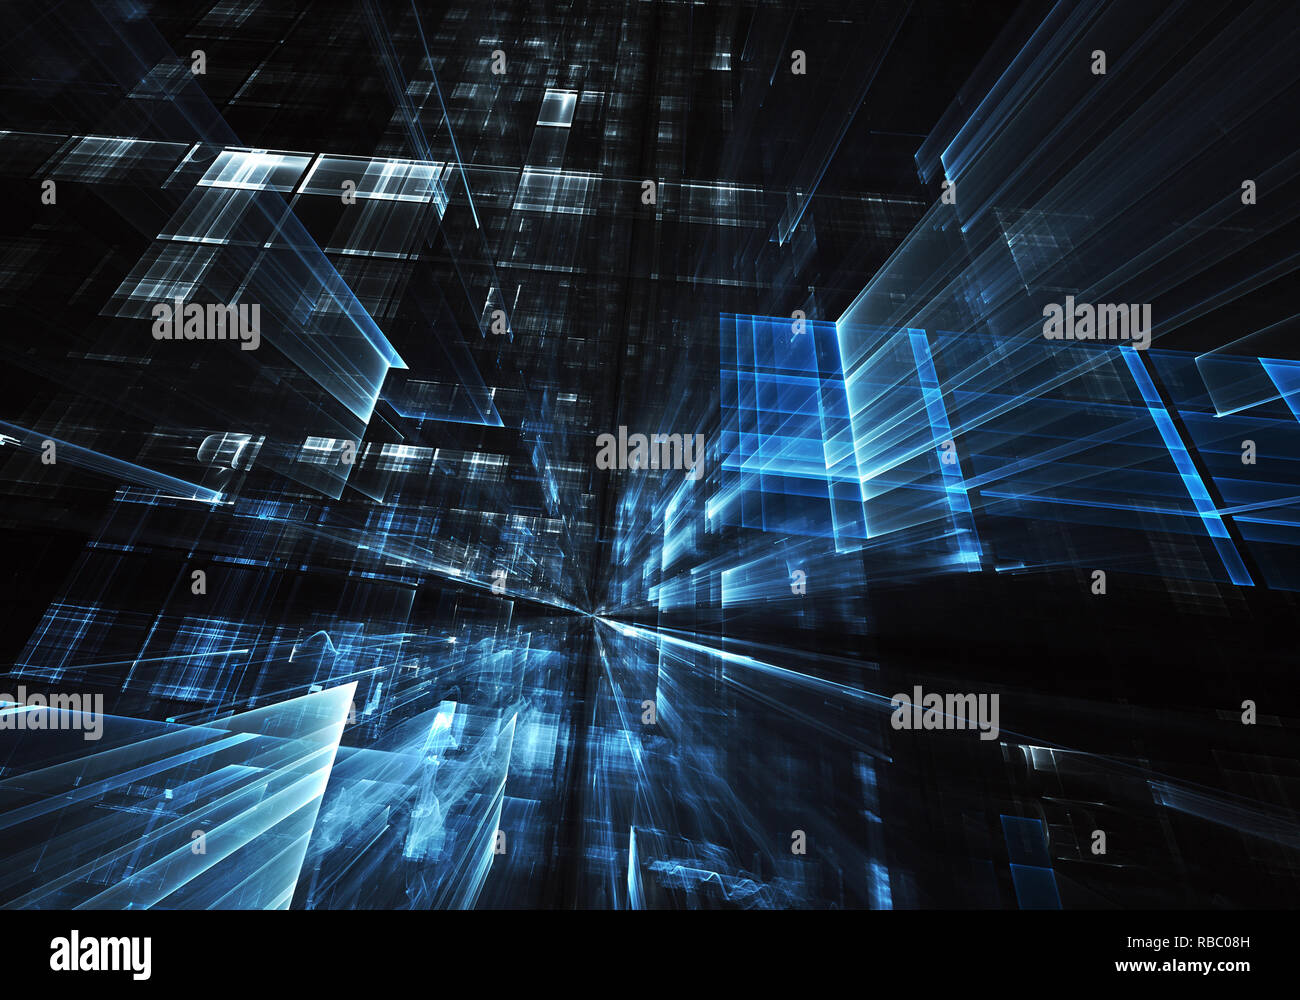 Computer generated abstract tehnology image. Three-dimensional 3D fractal, texture - Stock Image